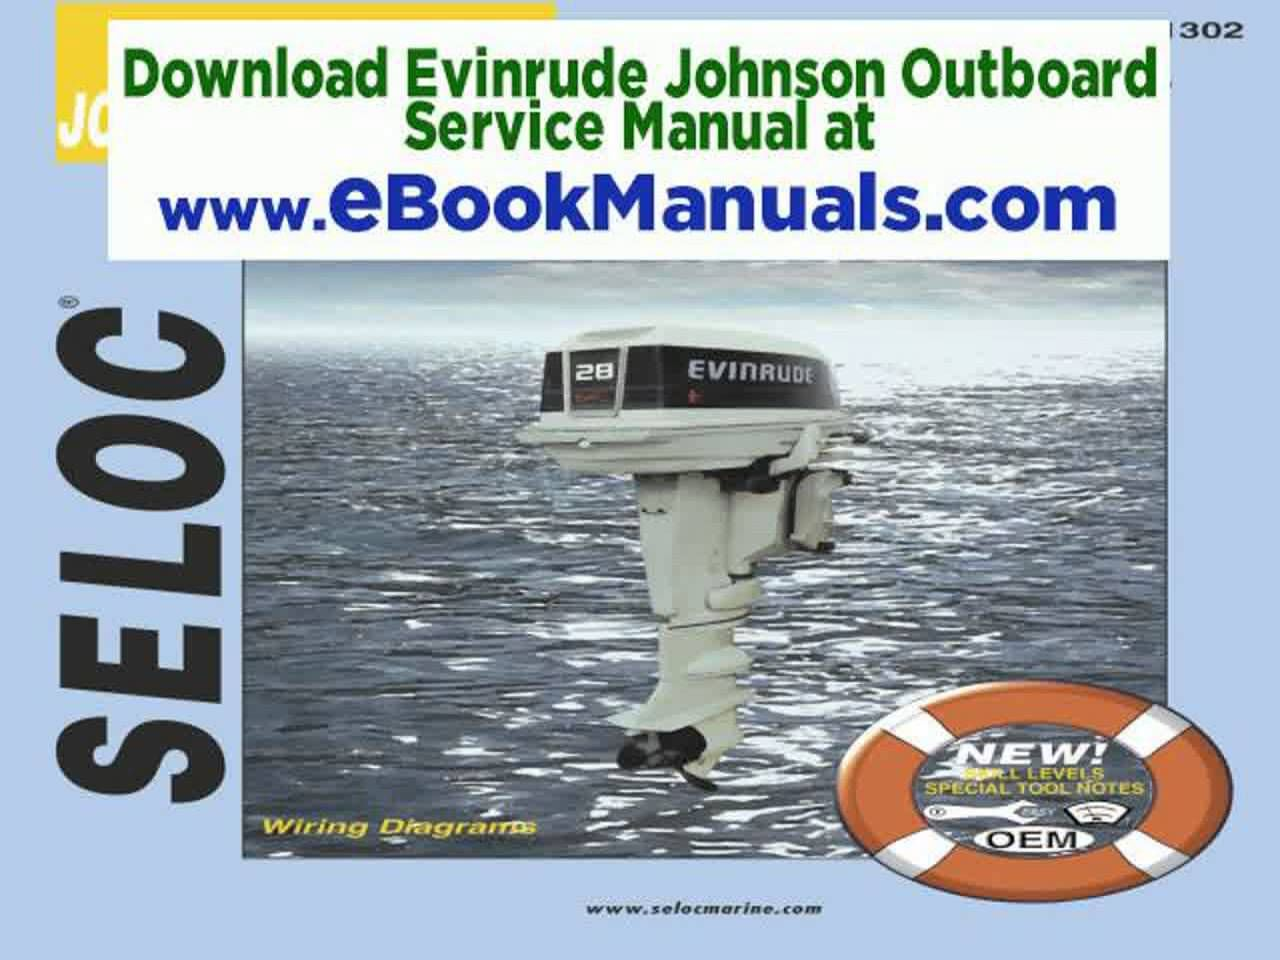 1990-2001 Johnson Evinrude Outboard Service Manual - PDF Online 2014 · Pdf ManualTextbookUser Guide